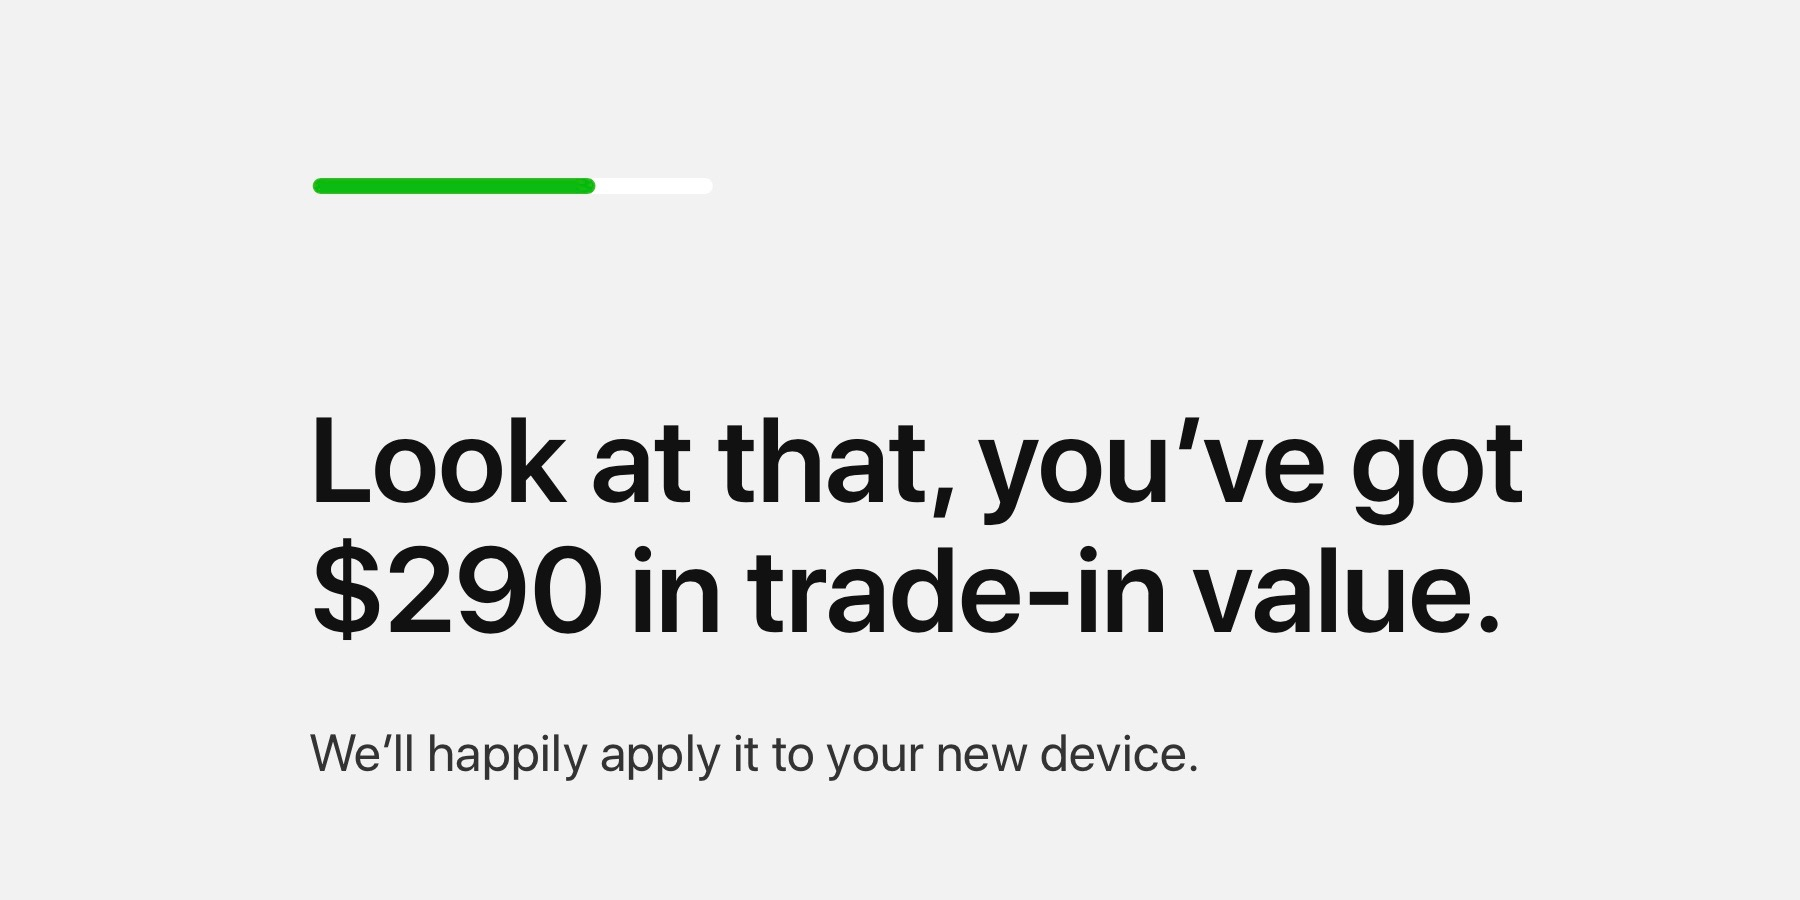 Apple pushes GiveBack program with trade-ins now worth instant credit toward new iPhone, iPad, Apple Watch, Mac